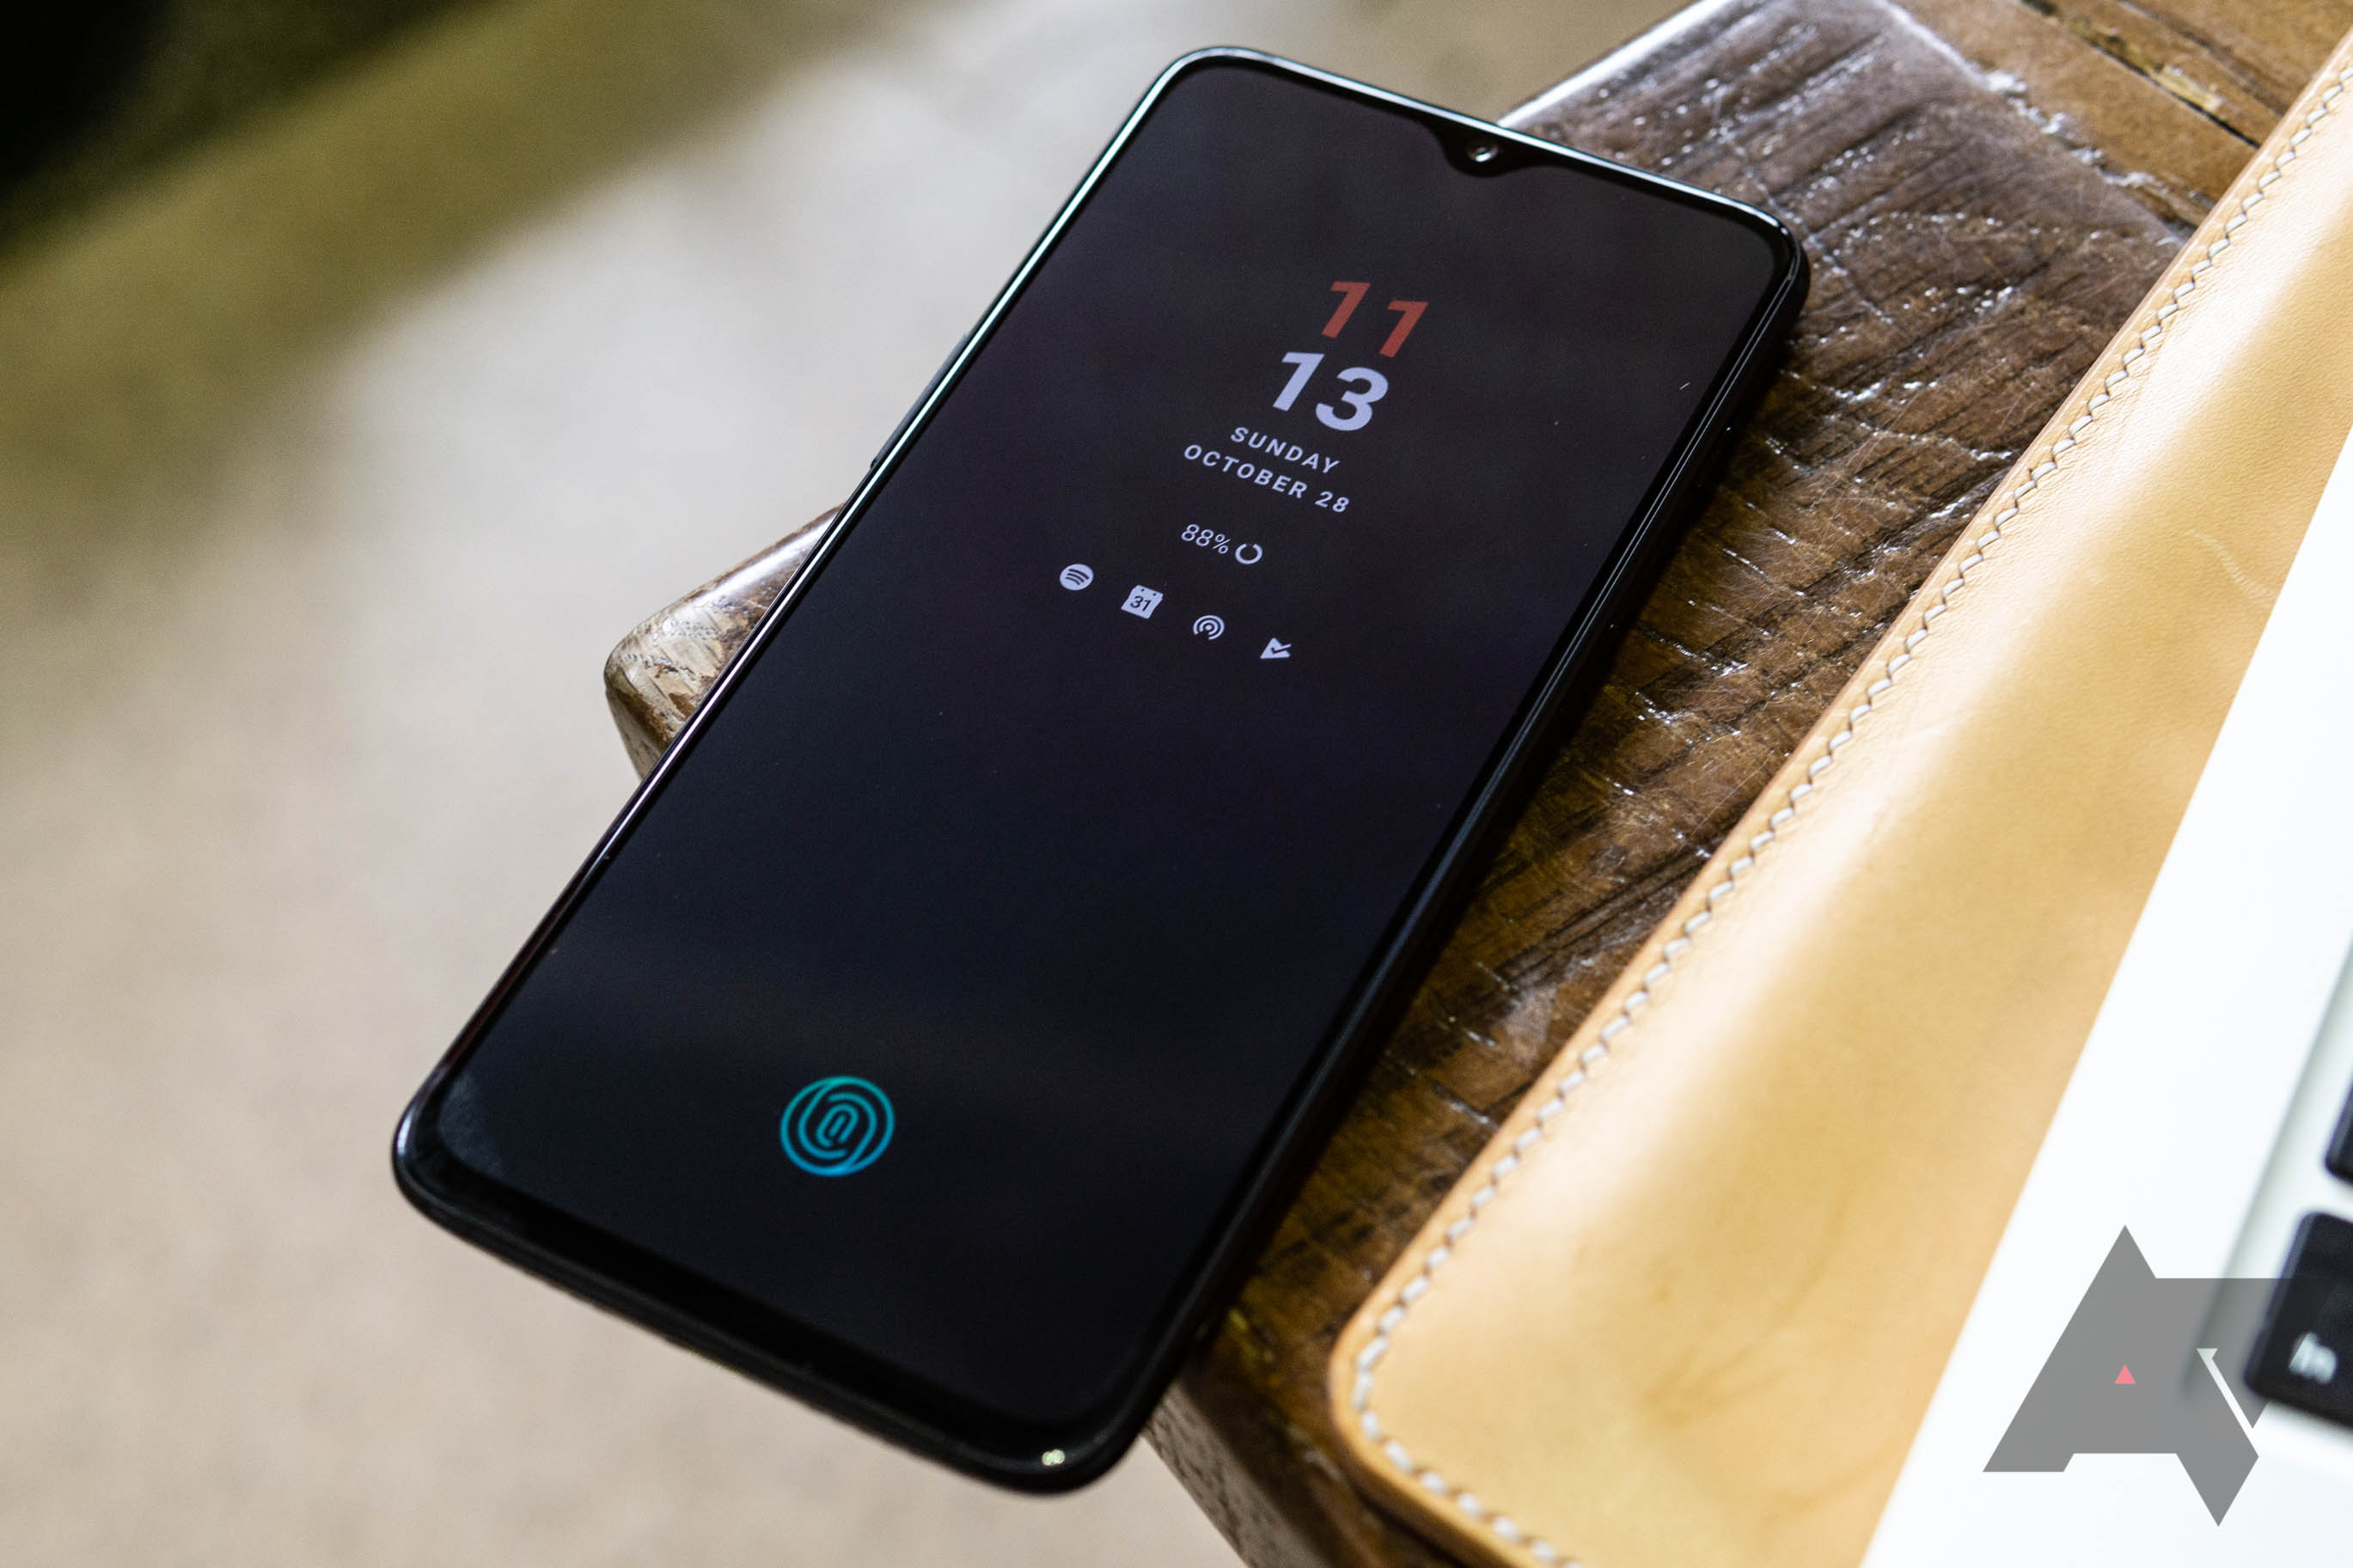 T-Mobile Black Friday deals include 'free' OnePlus 6T and Galaxy S9 with eligible trade-in and new line, 50% off JBL speakers, and more